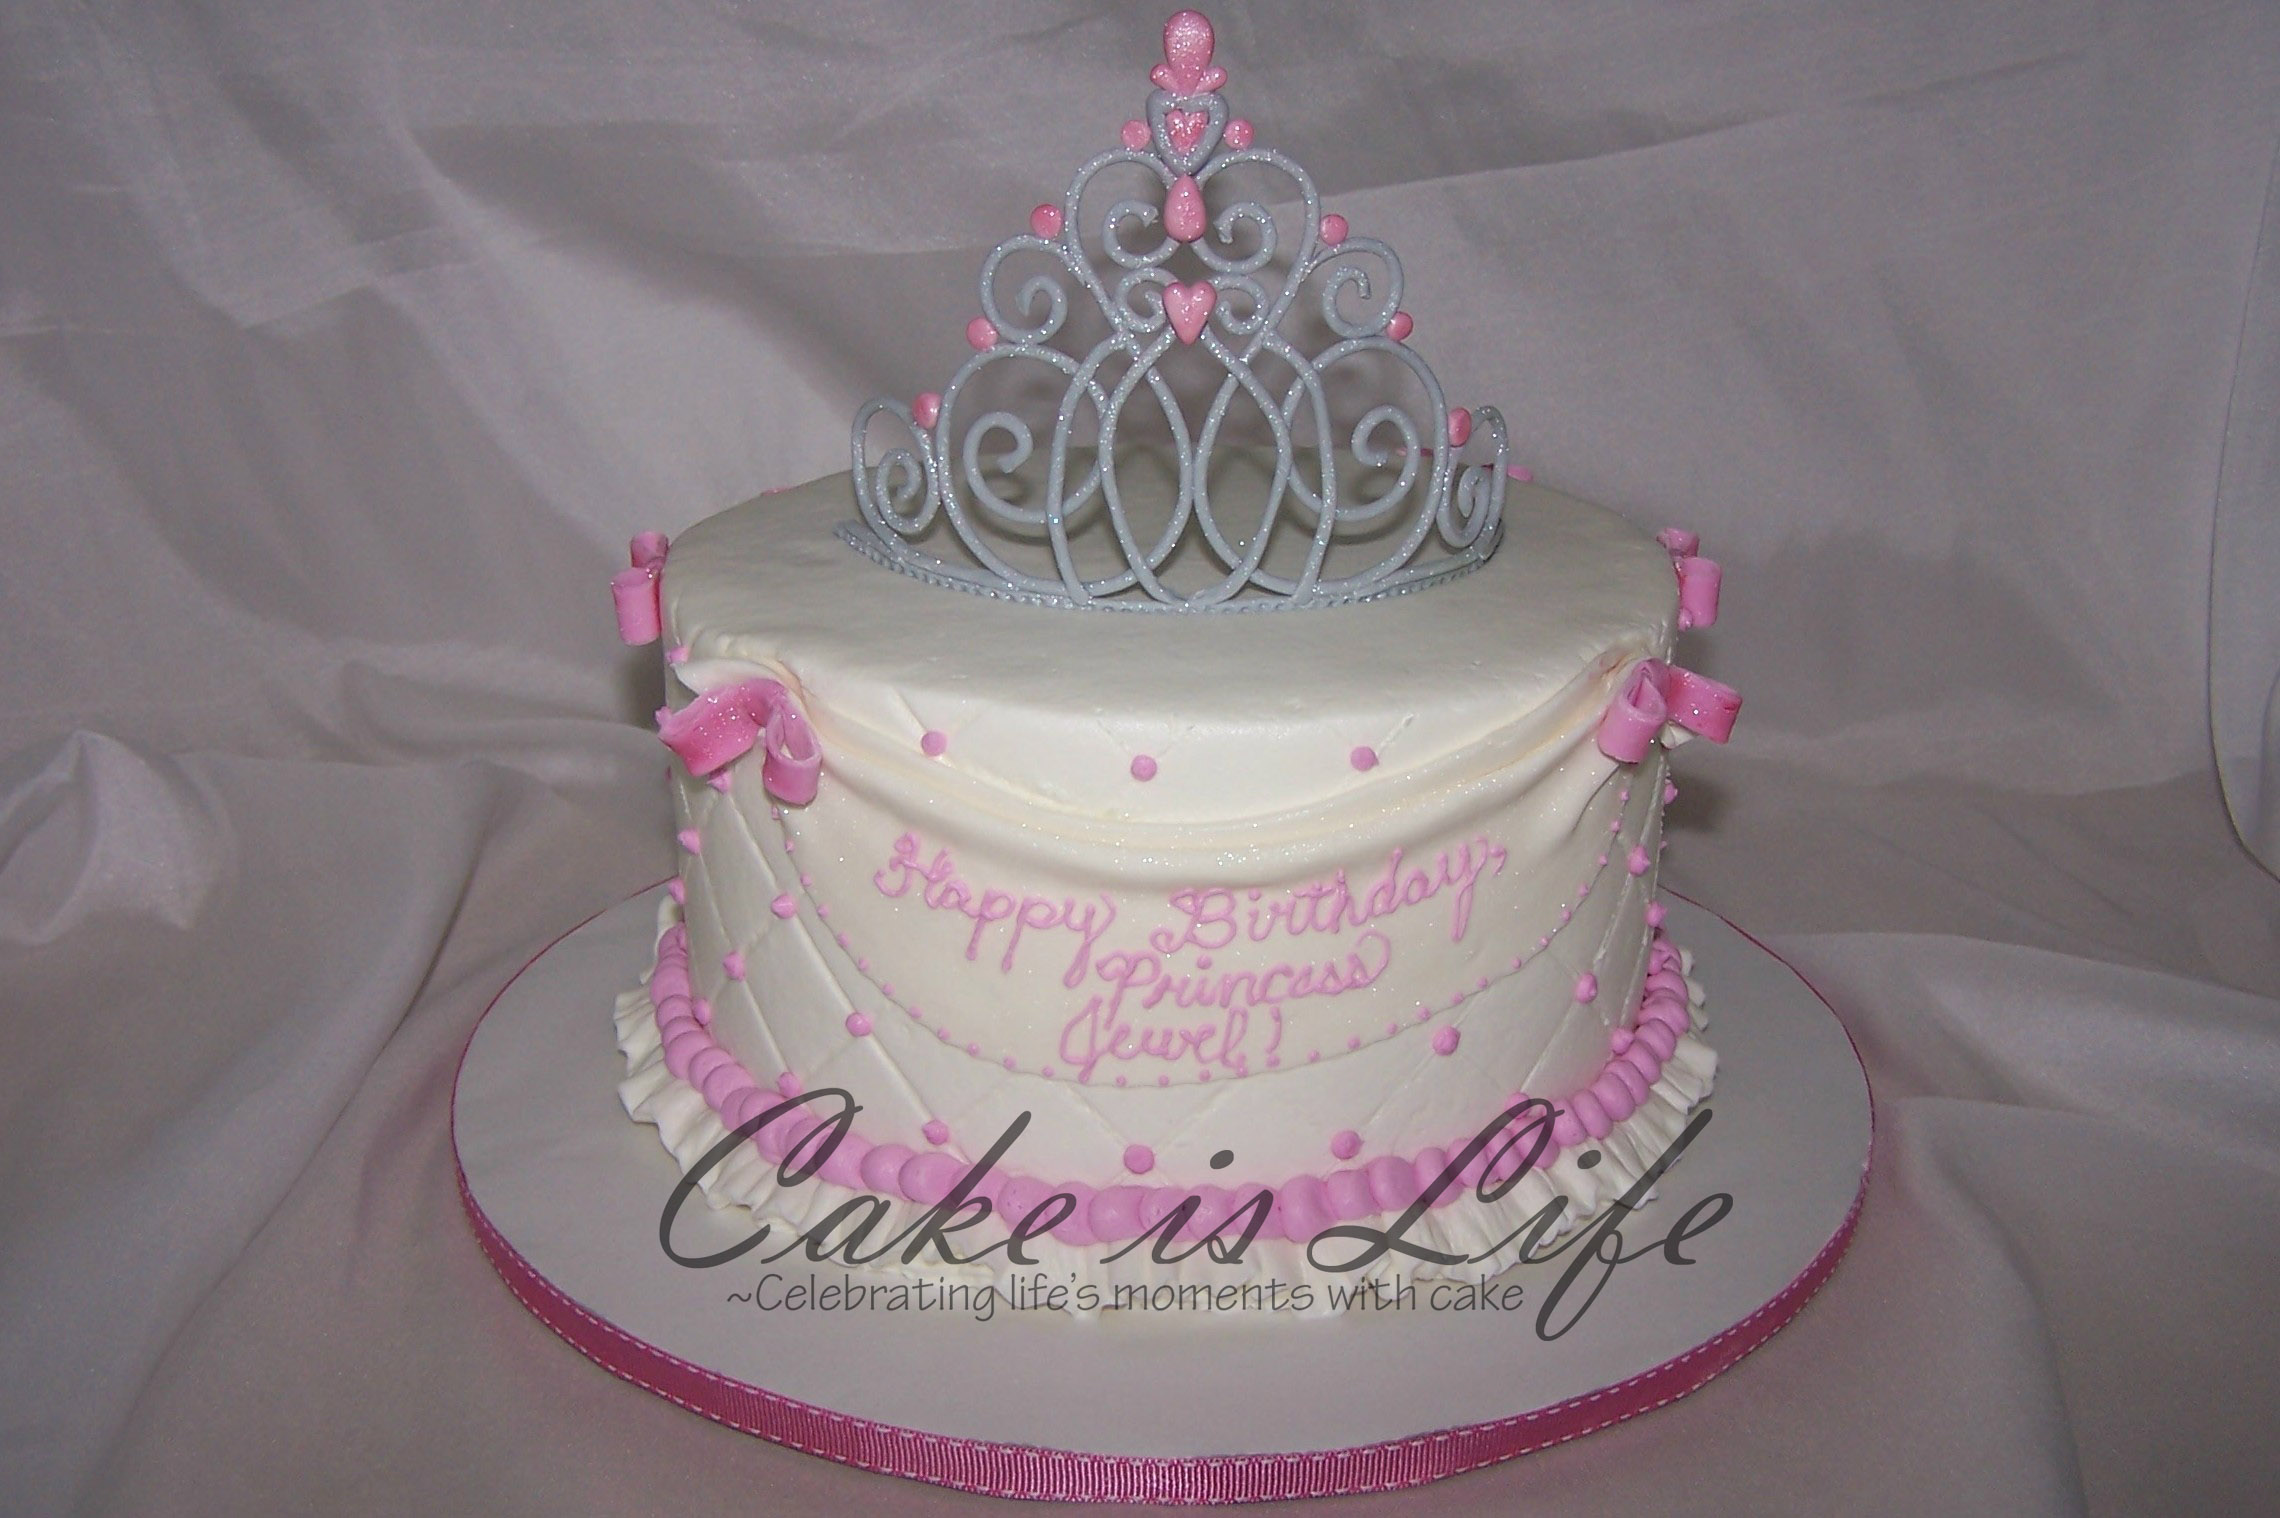 Birthday Cake Pictures Of Princess : Pin Princess Crown Birthday Cake Ajilbabcom Portal Cake on ...